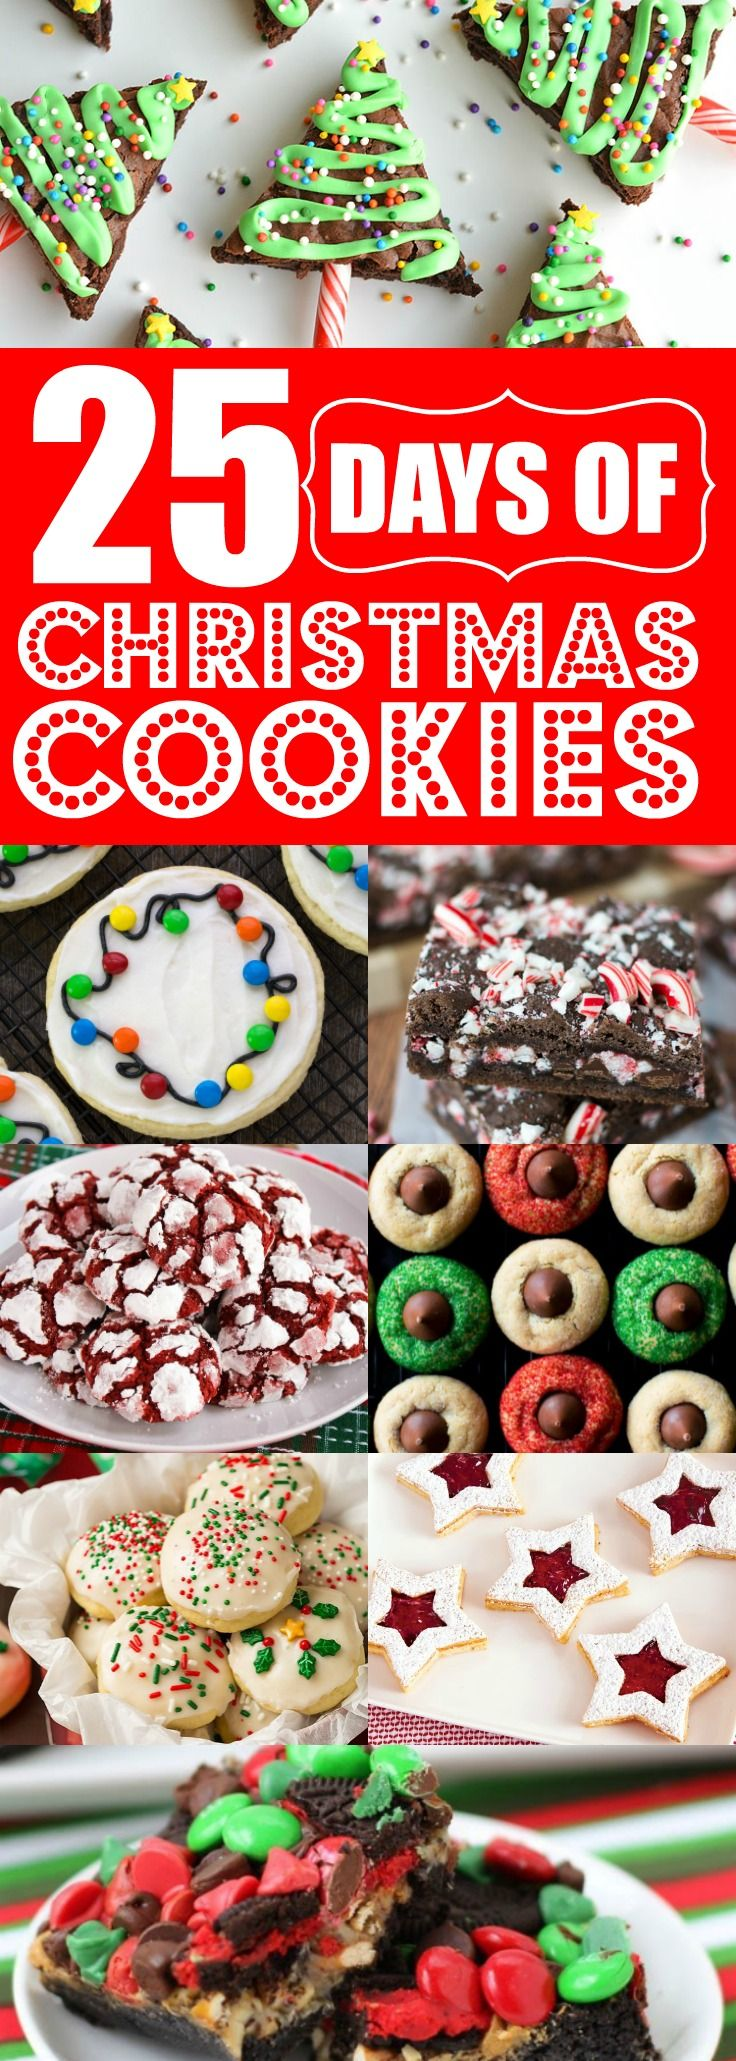 These 25 Christmas cookies are THE BEST! I'm so happy I found these UNIQUE Christmas cookie ideas! Now I have some great homemade holiday cookies to bring to my next cookie exchange!! Definitely pinning!!